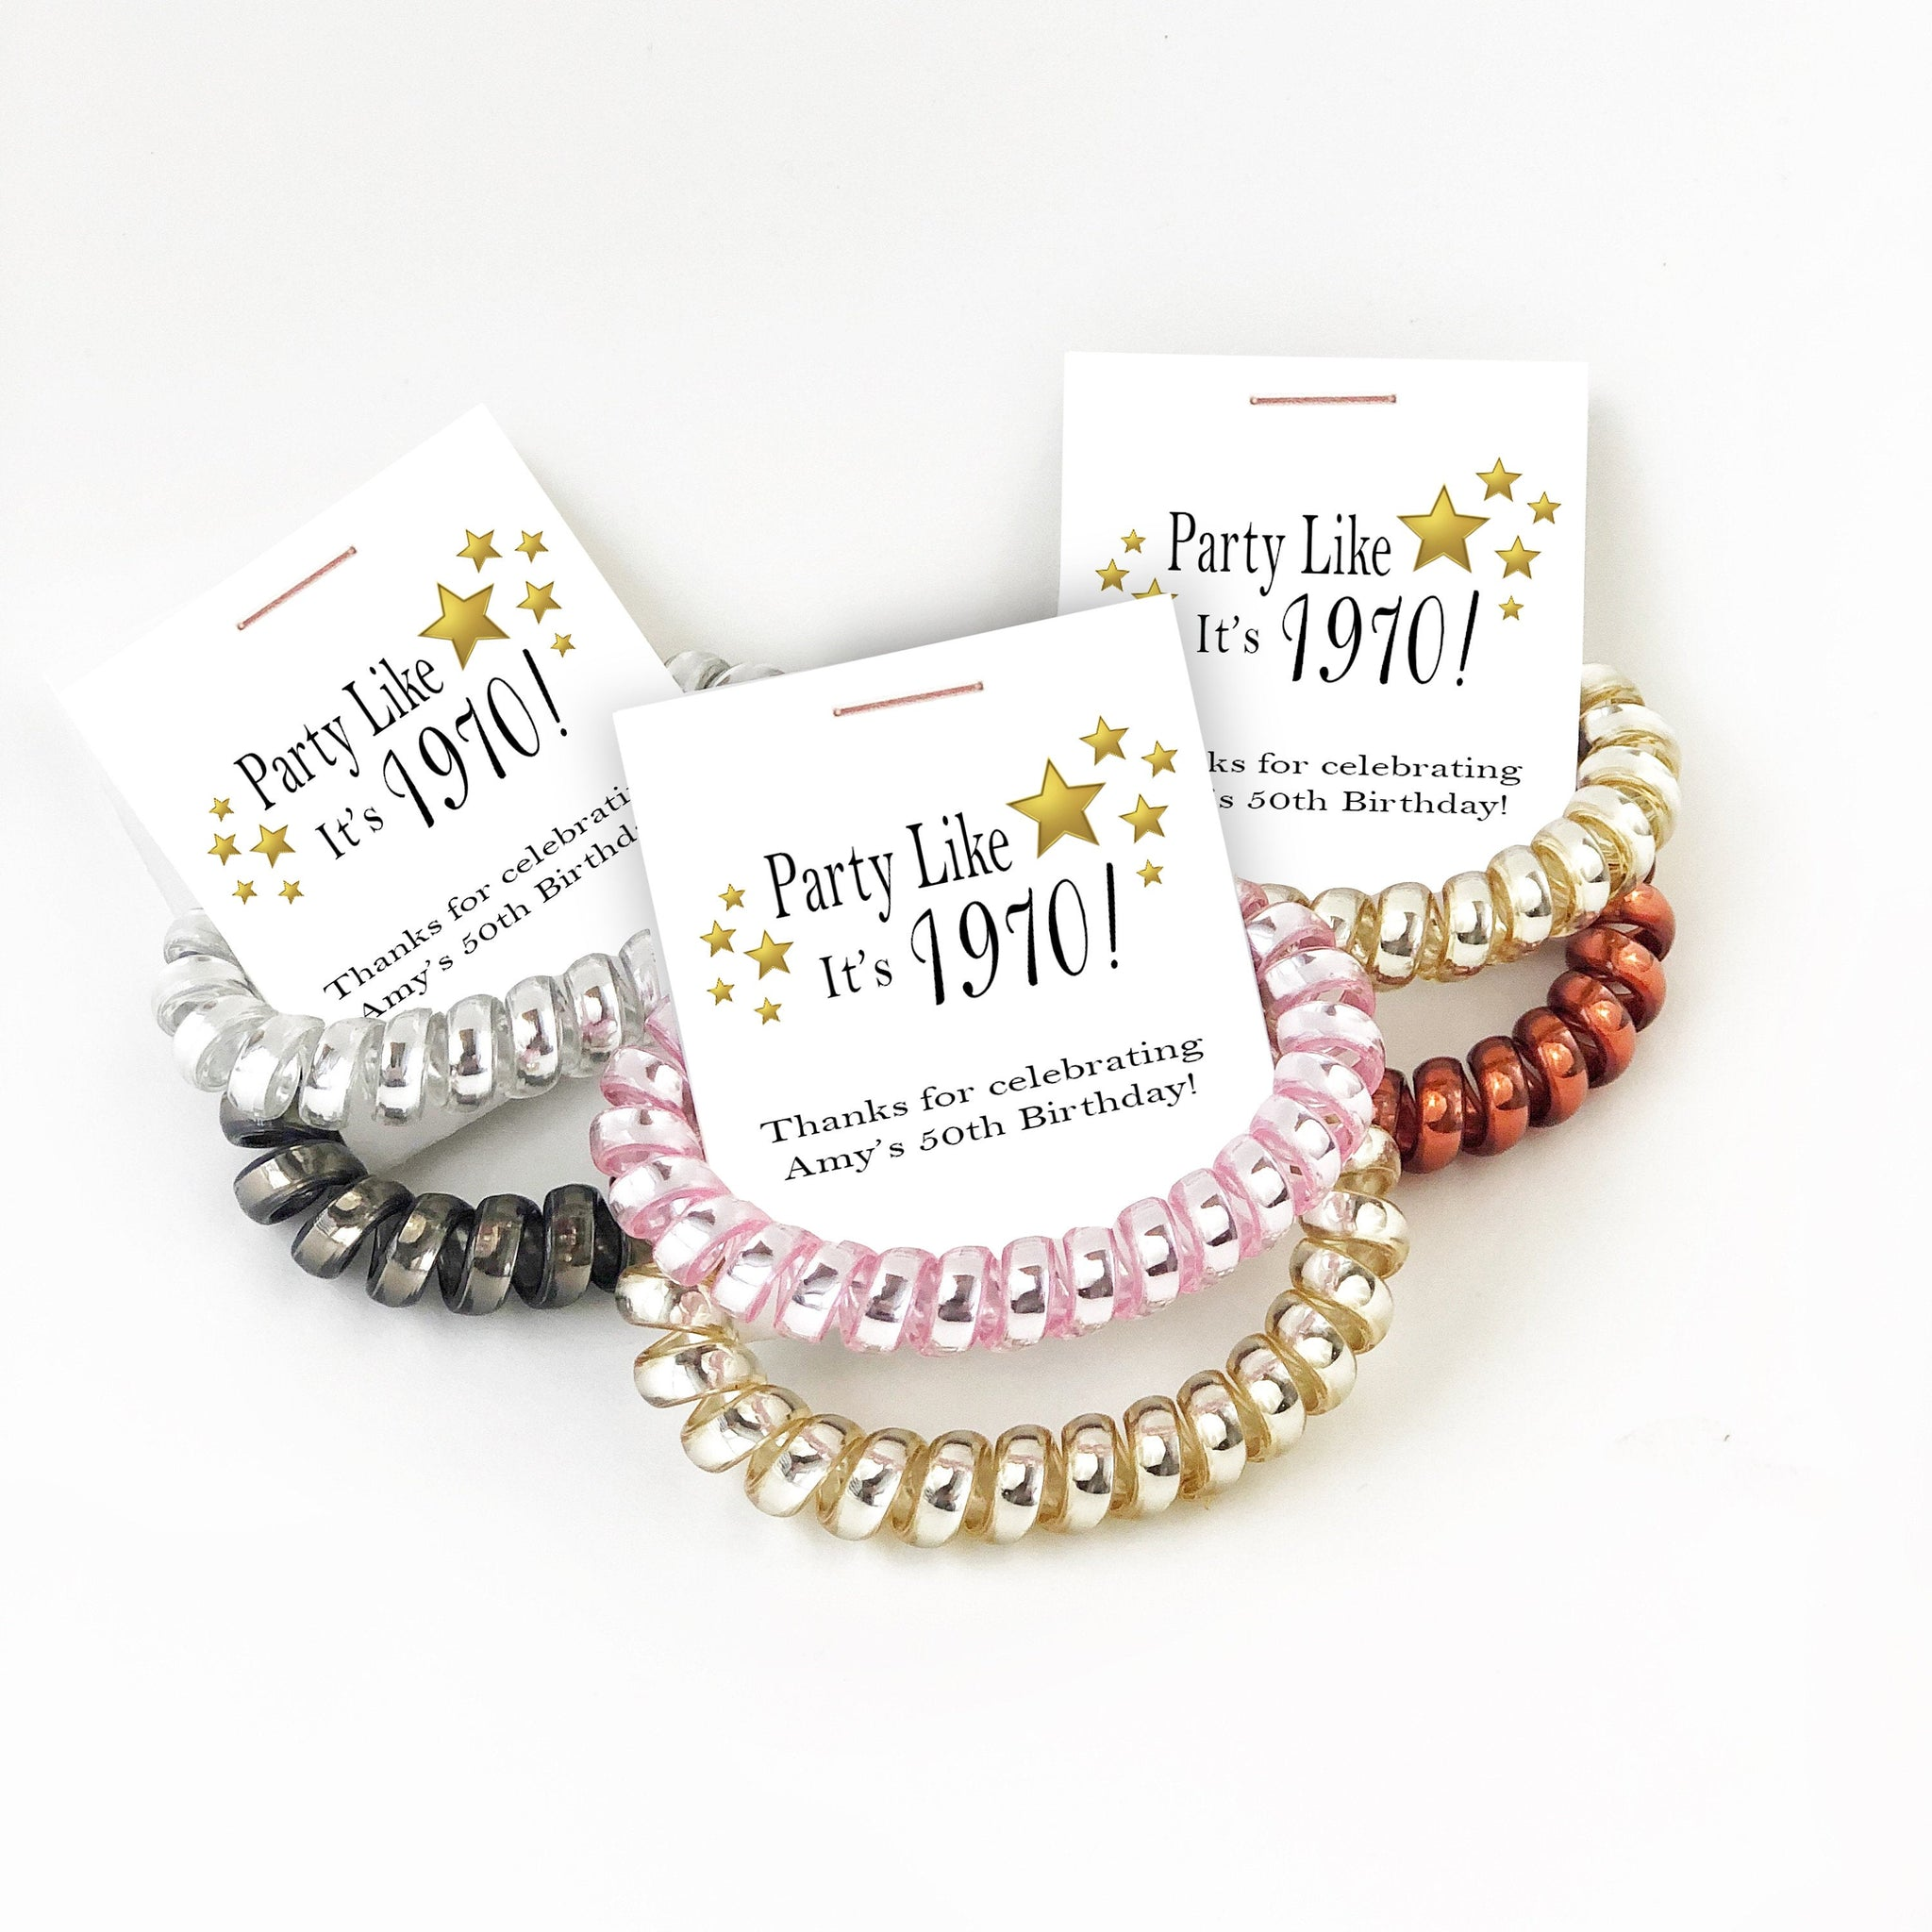 50th Birthday Party Favors, Spiral Hair Ties - @PlumPolkaDot